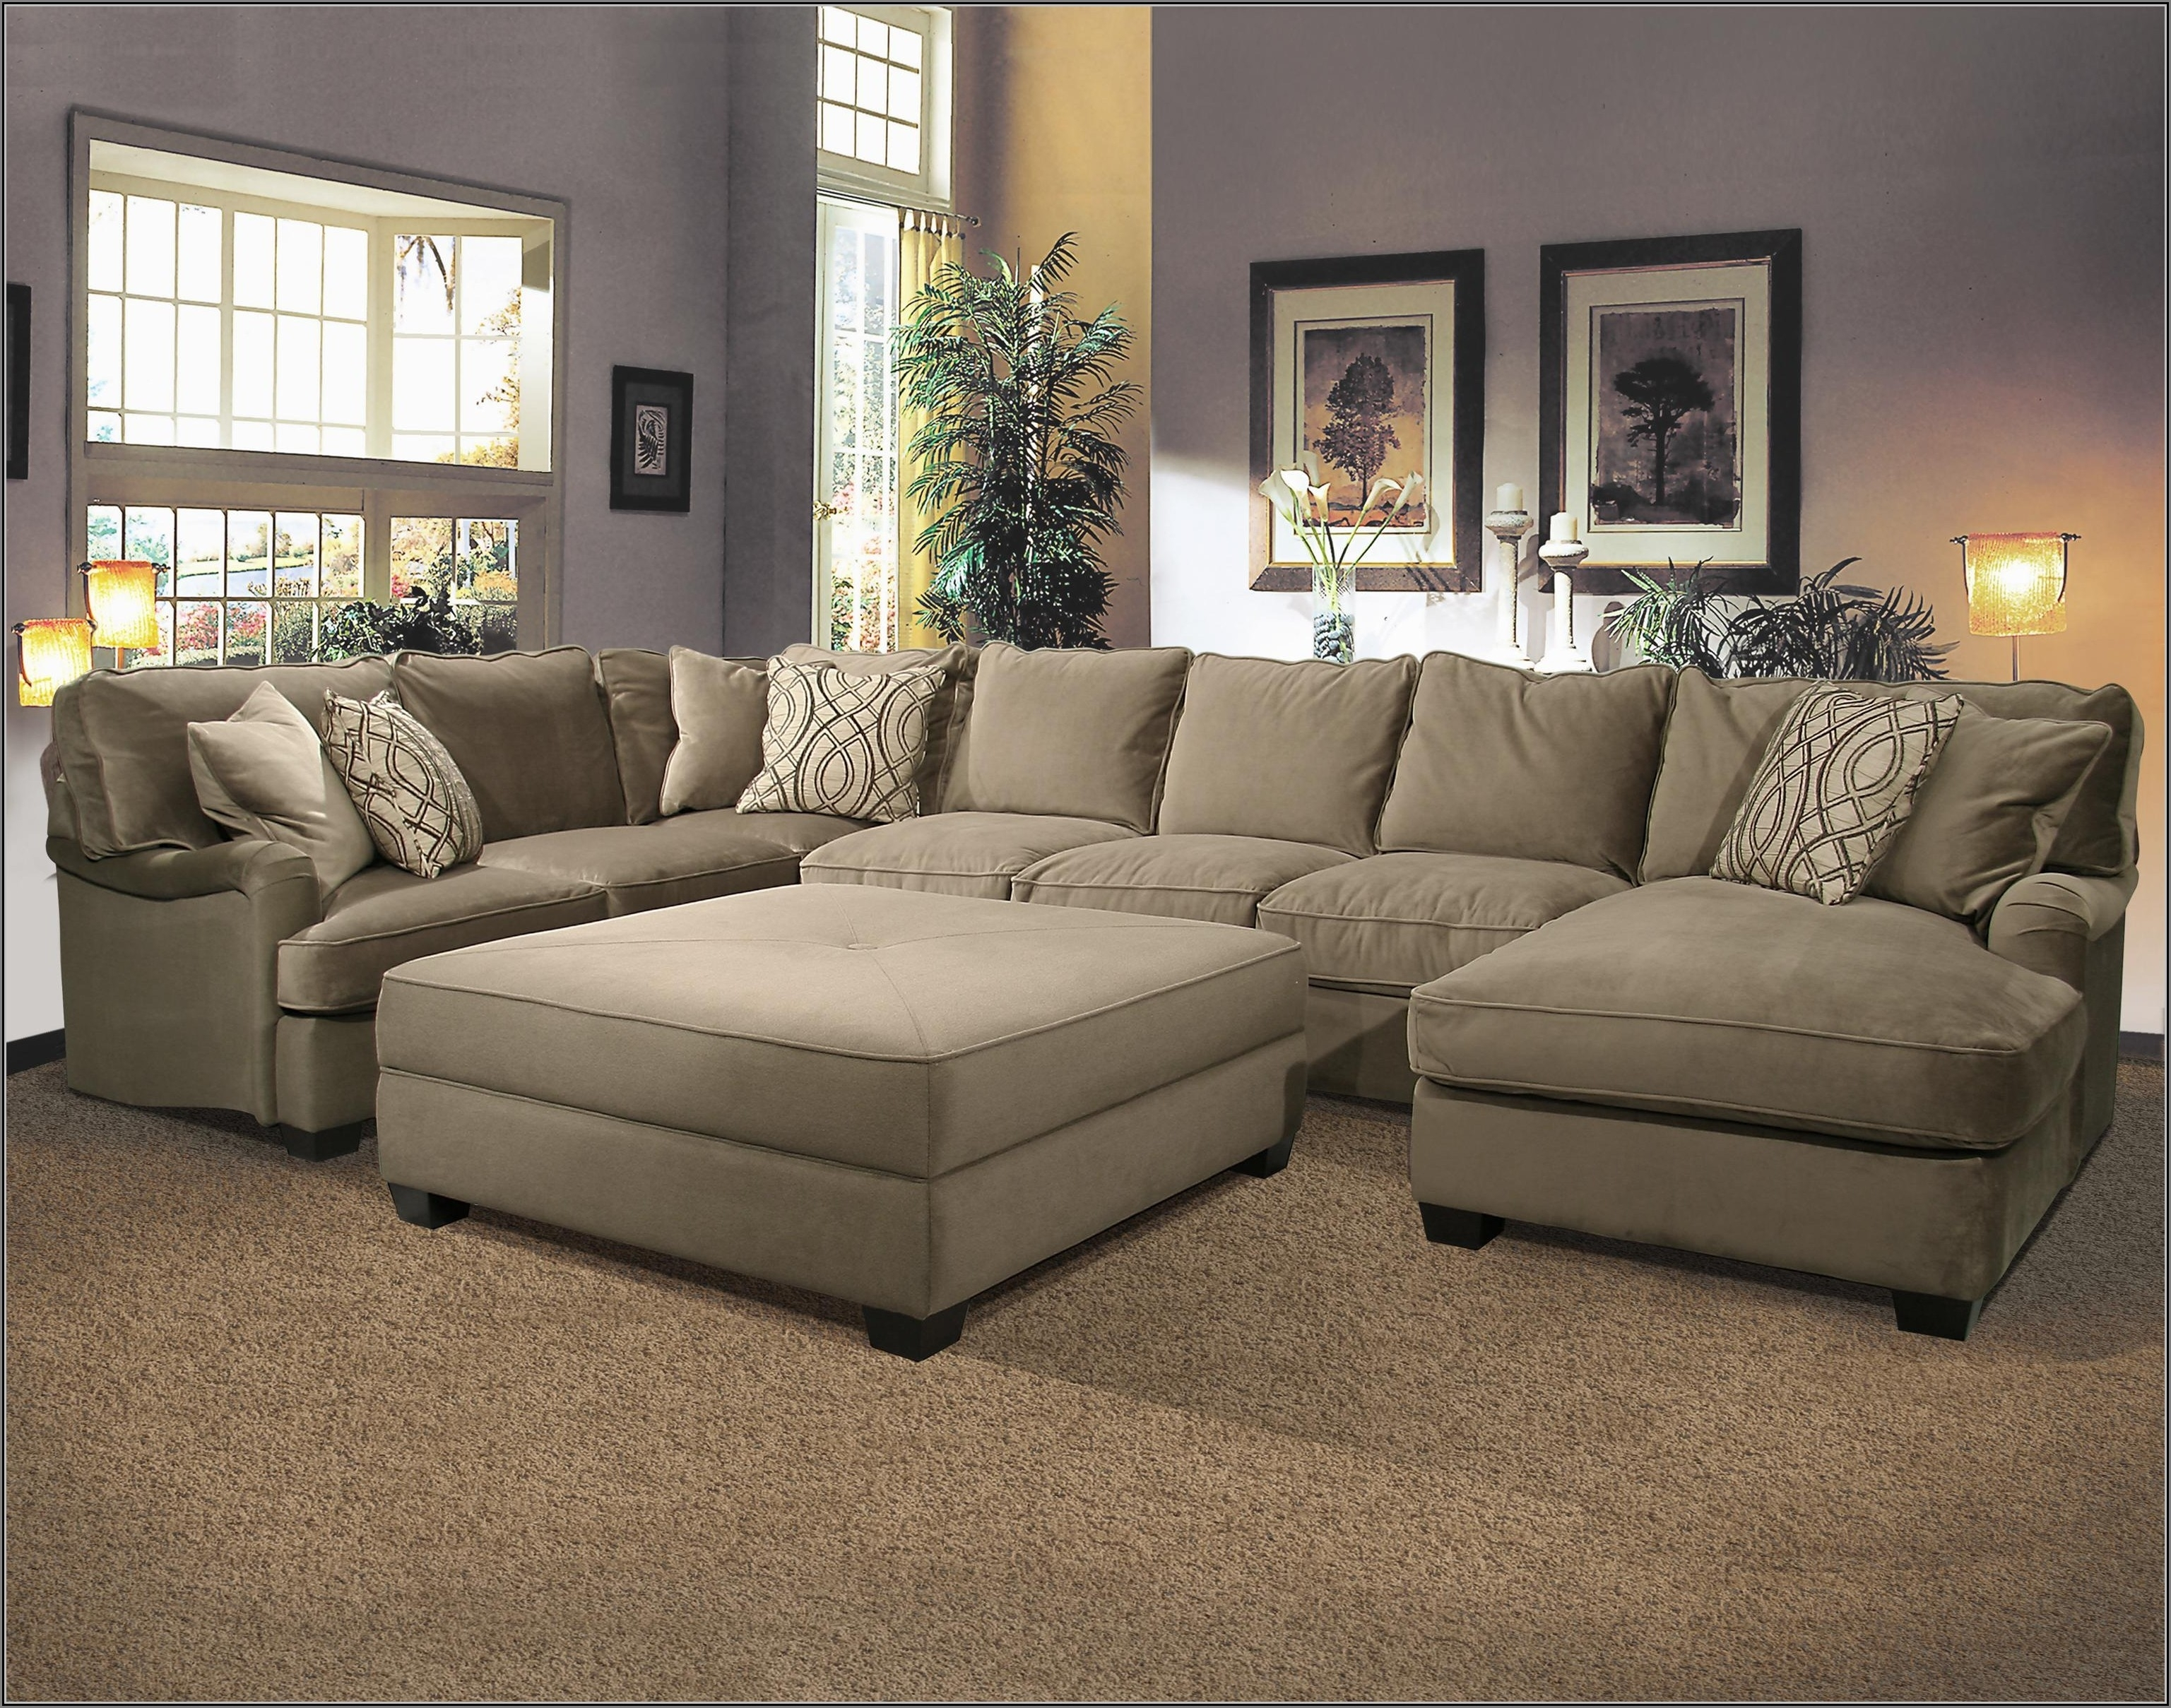 Sectional Sofa With Large Ottoman Hotelsbacau Com Intended For Regarding Small Sectional Sofas With Chaise And Ottoman (View 8 of 15)